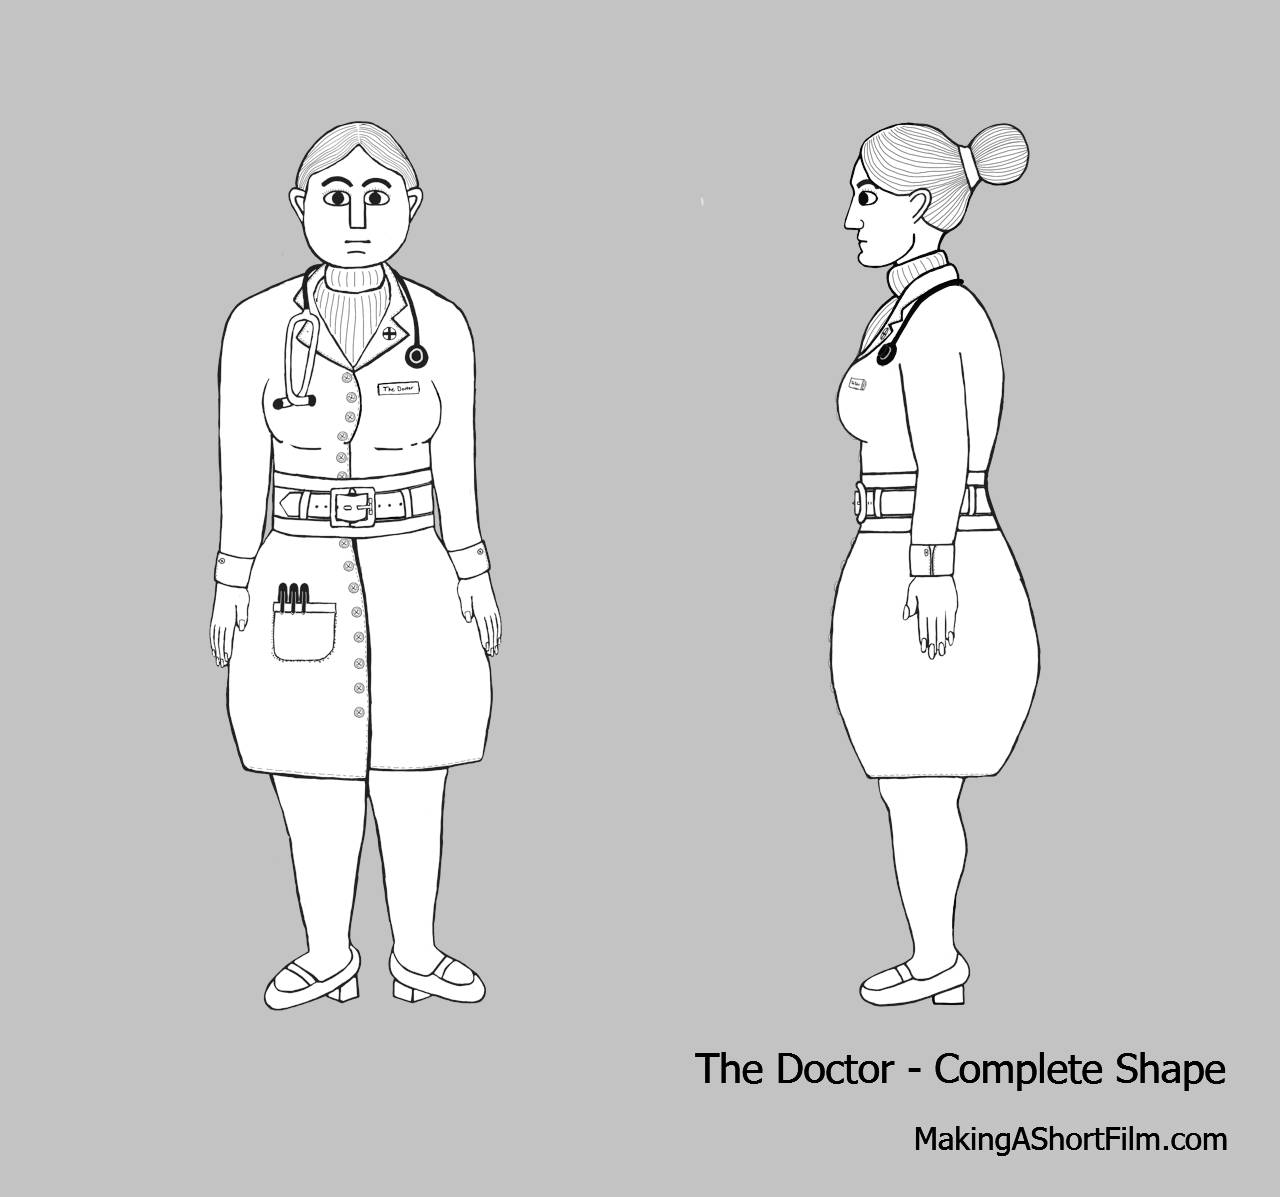 The completed shape of the Doctor